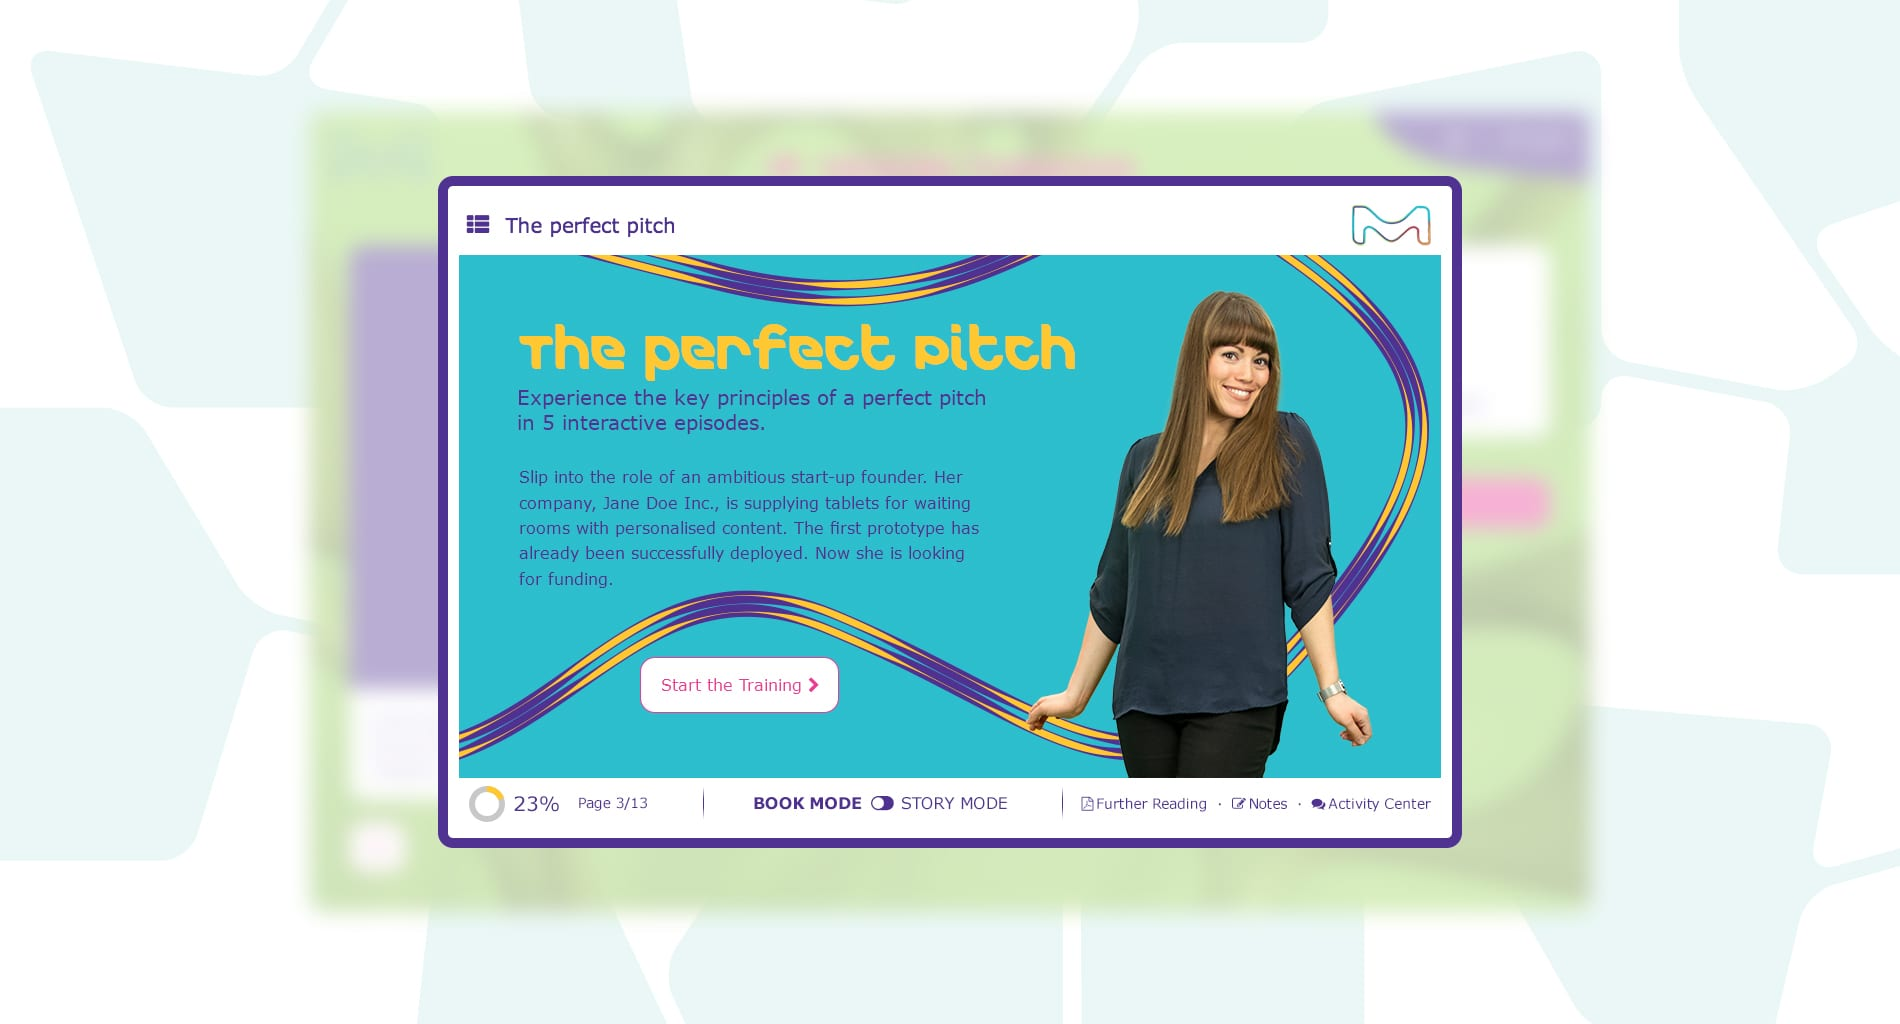 Merck-TTI-PerfectPitch01.jpg